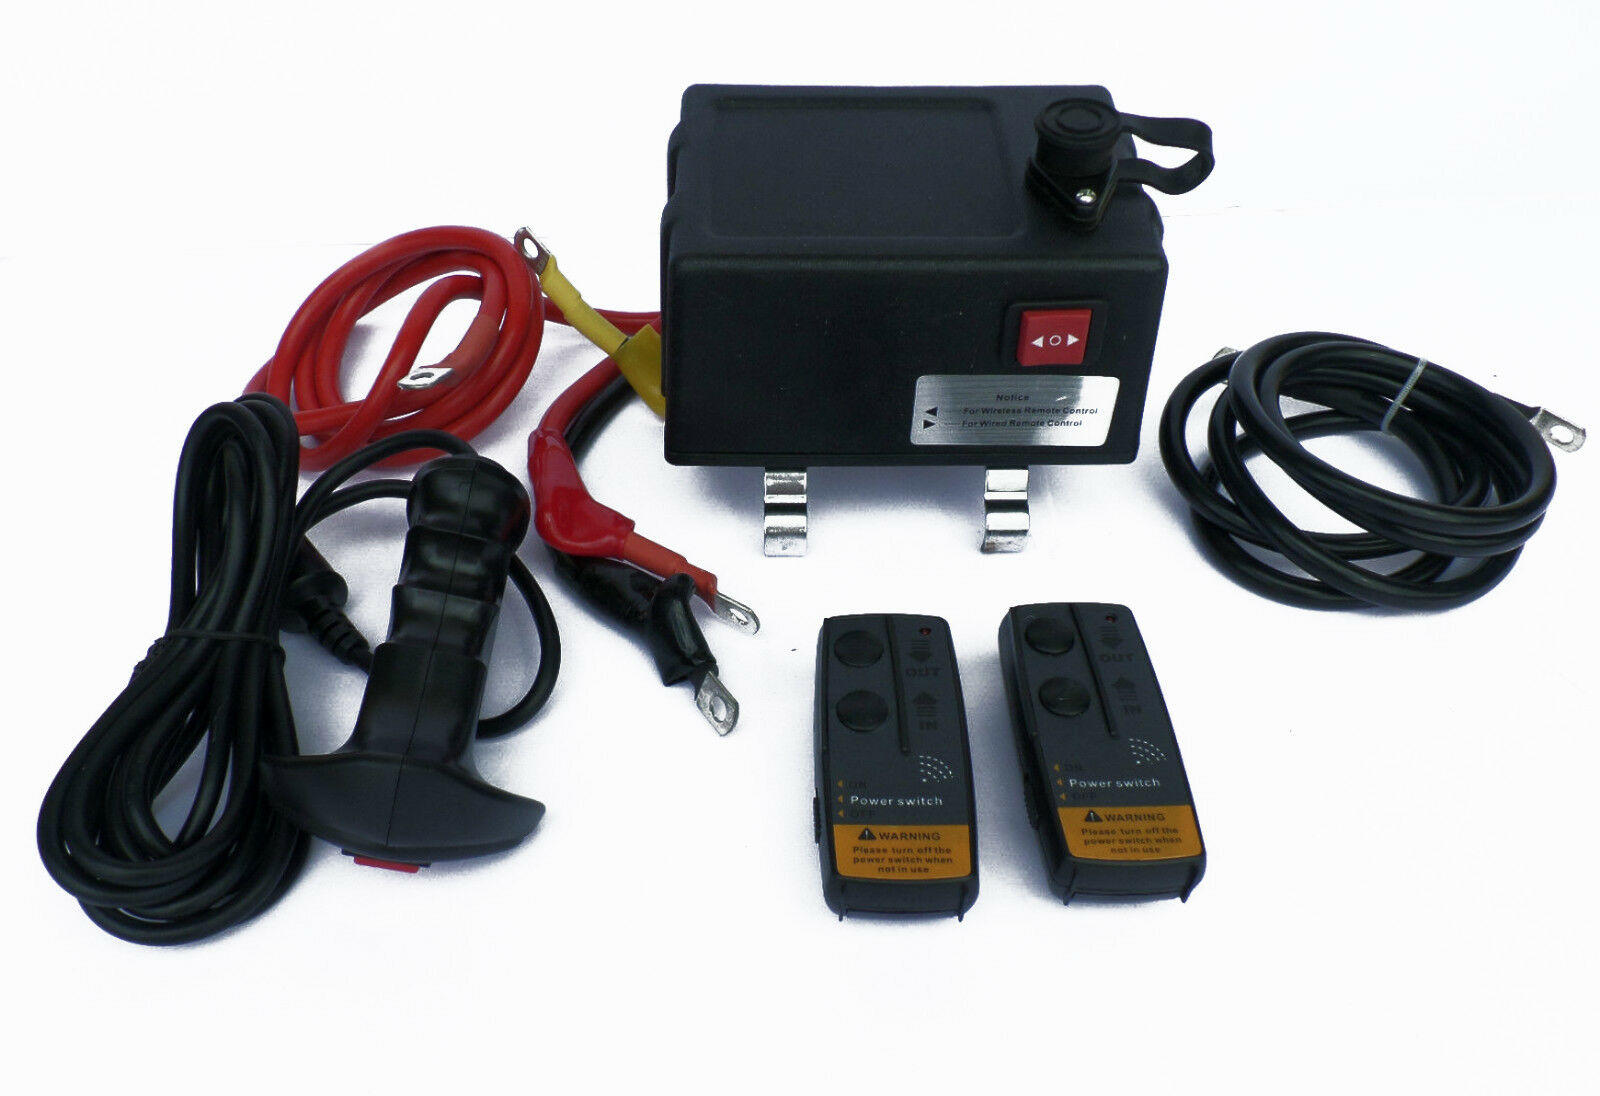 Details about Ultimate Winch solenoid control Box with remotes , 500amp on